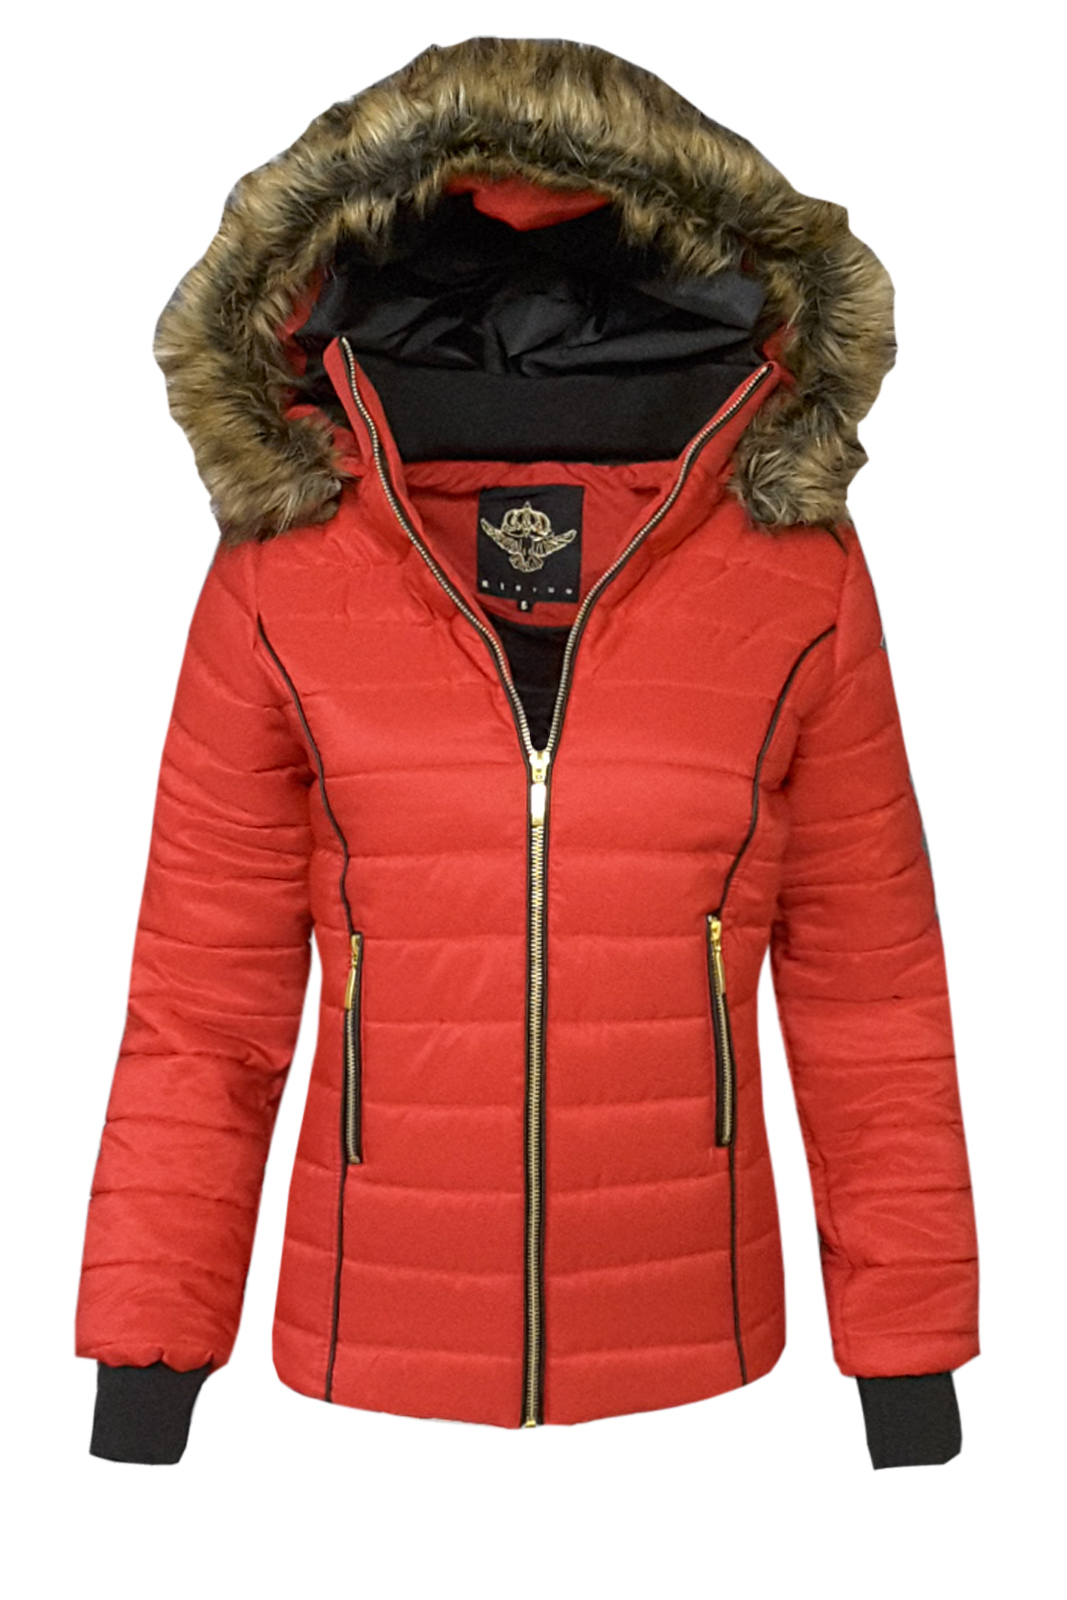 1, results for puffer bomber jacket Save puffer bomber jacket to get e-mail alerts and updates on your eBay Feed. Unfollow puffer bomber jacket to stop getting updates on your eBay feed.